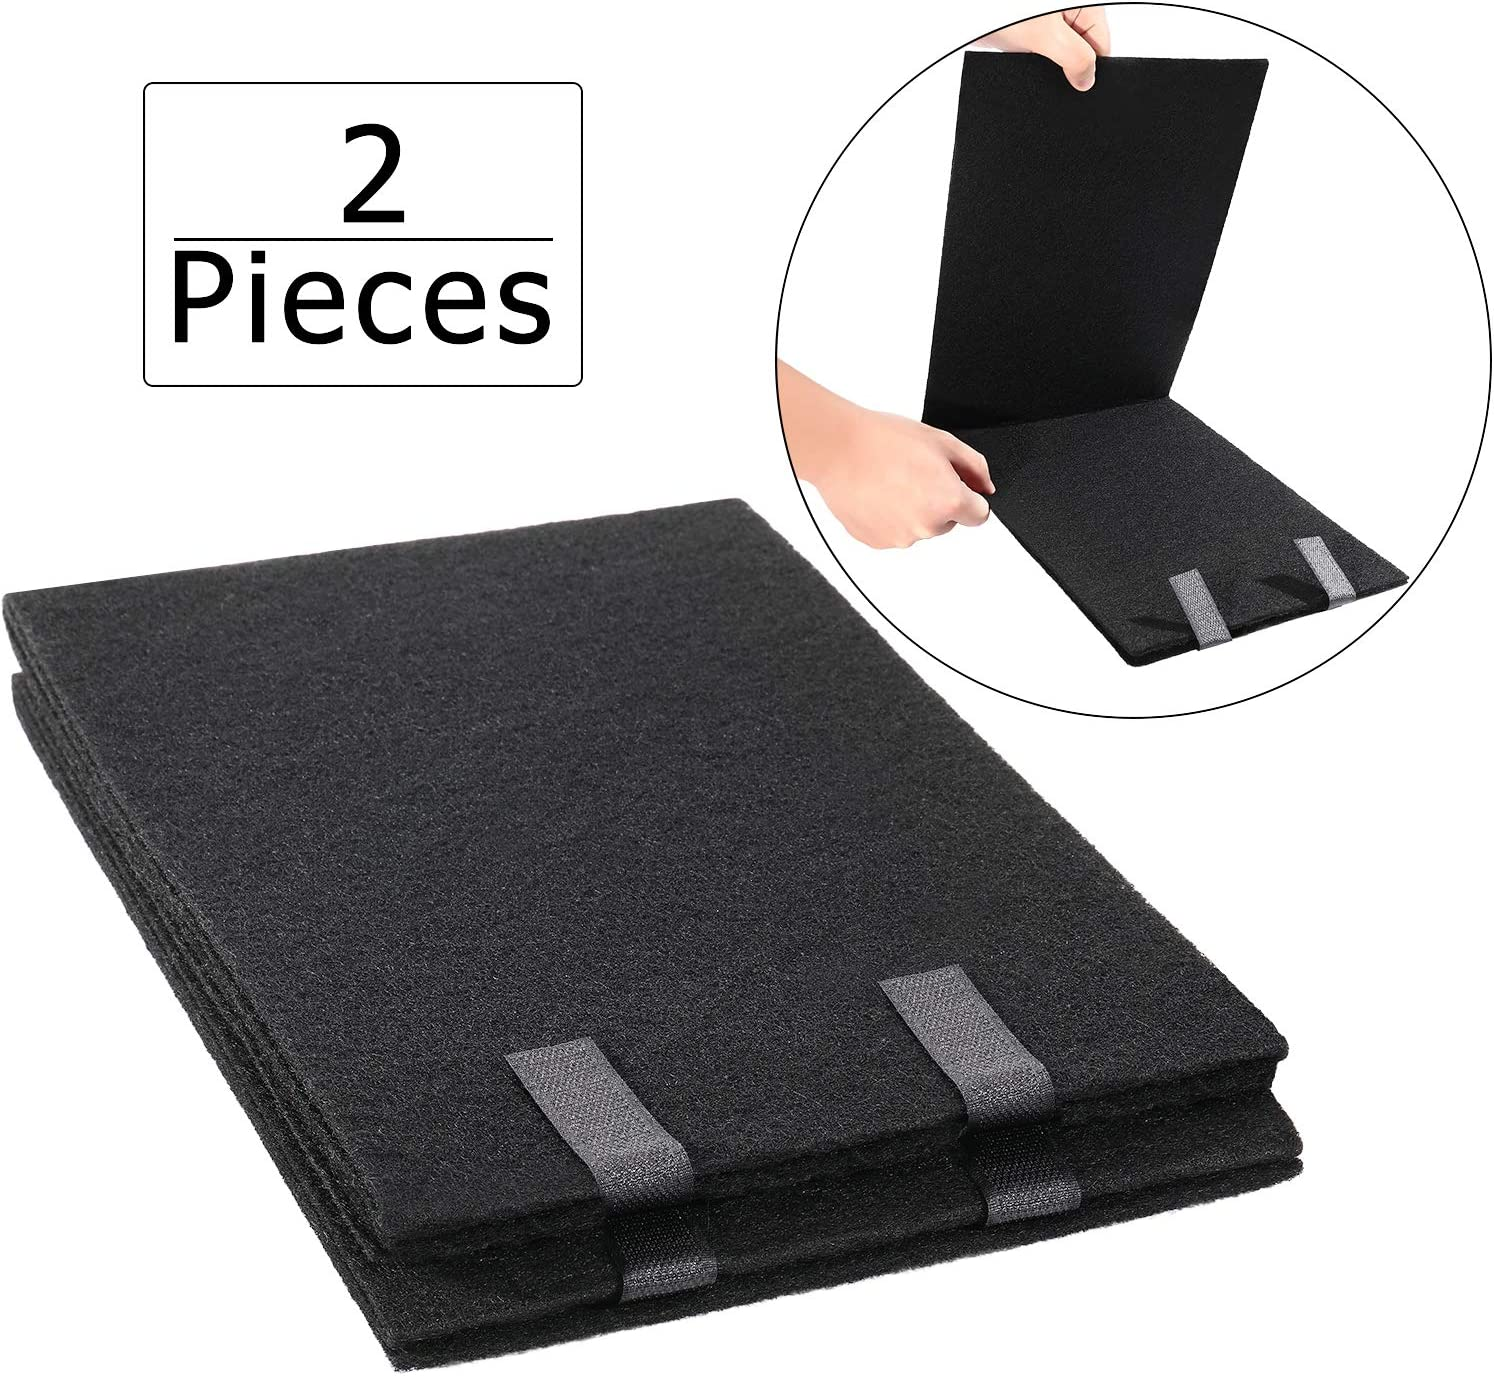 2 Packs Universal Activated Carbon Filters 47.8 x 8 Inch Cut to Fit Replacement Carbon Air Filter Black Carbon Pad Filter Sheet for Air Purifiers Air Conditioner